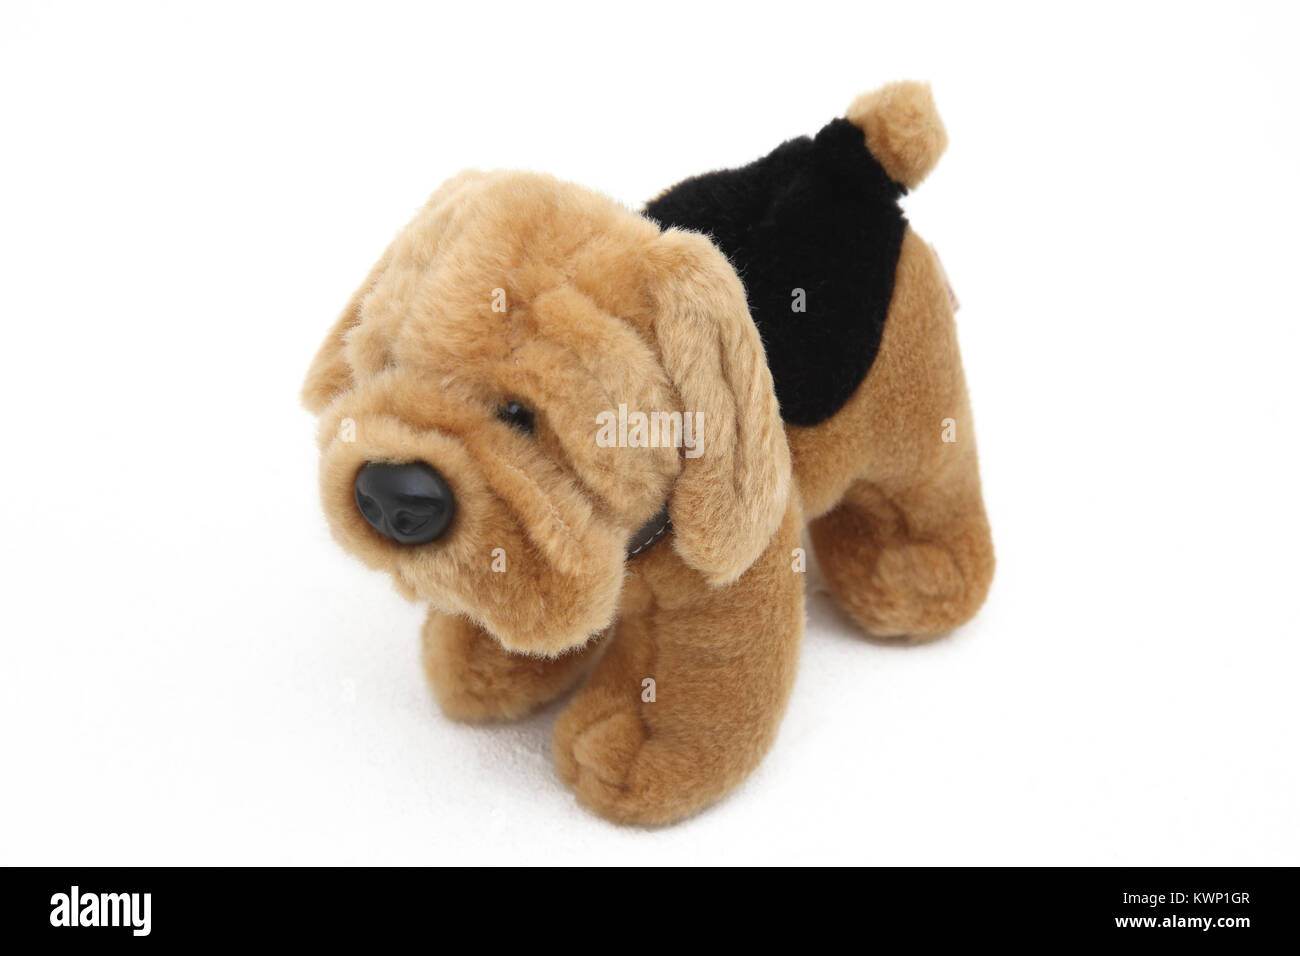 Brown and Black Soft Toy Dog By Keel Toys - Stock Image